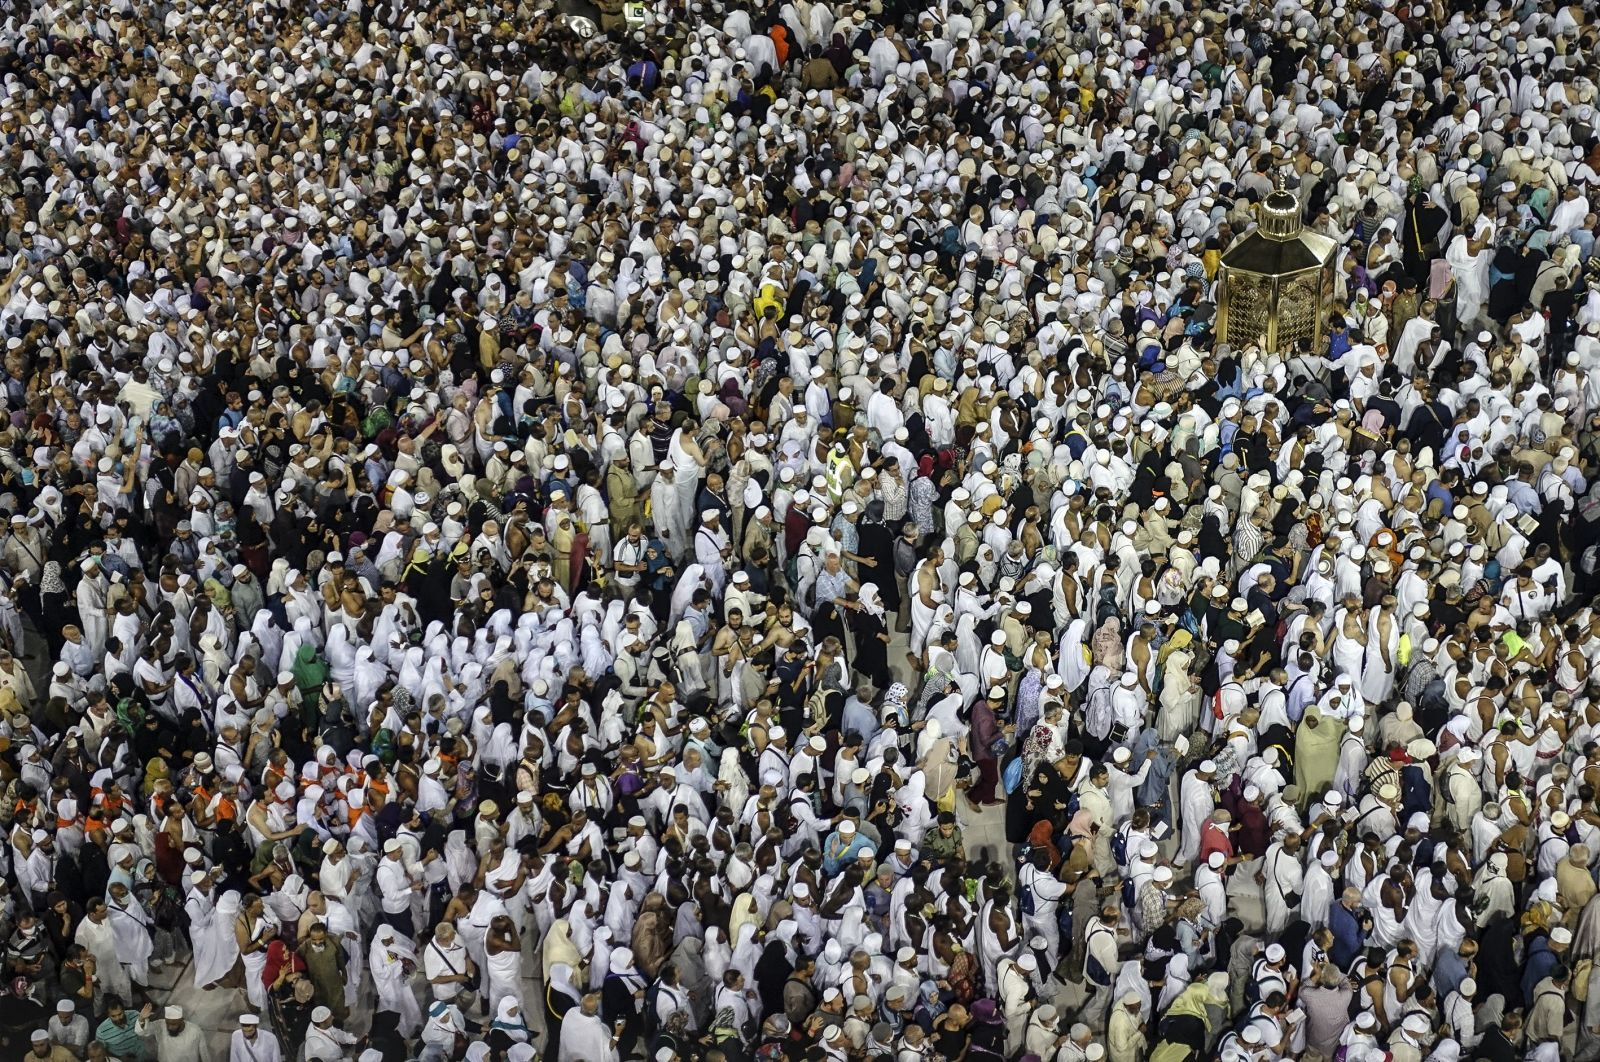 Saudi Arabia: Only Saudi Residents Can Participate in Hajj 2020